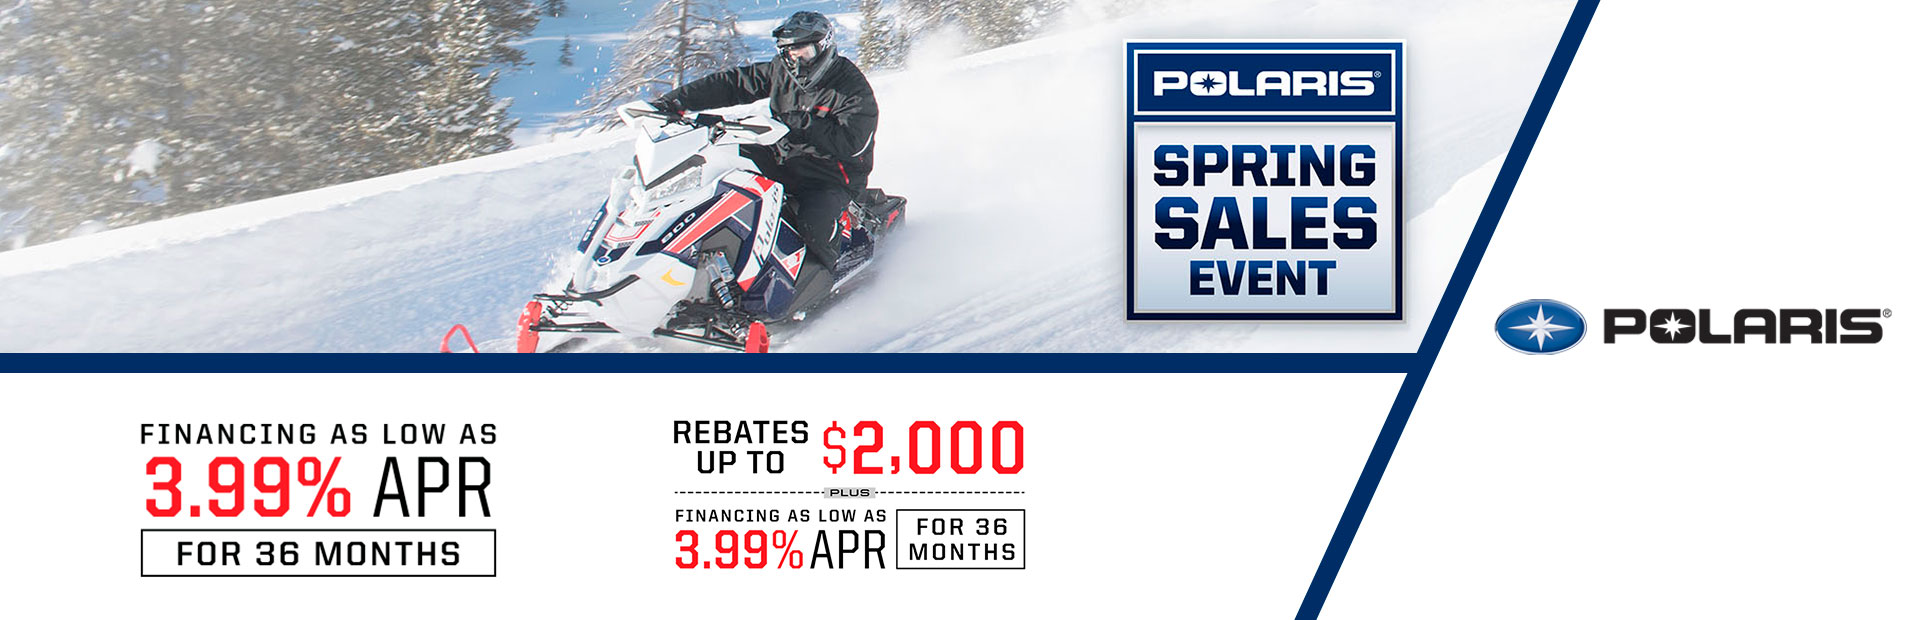 Polaris Industries: Polaris Snowmobiles Spring Sales Event